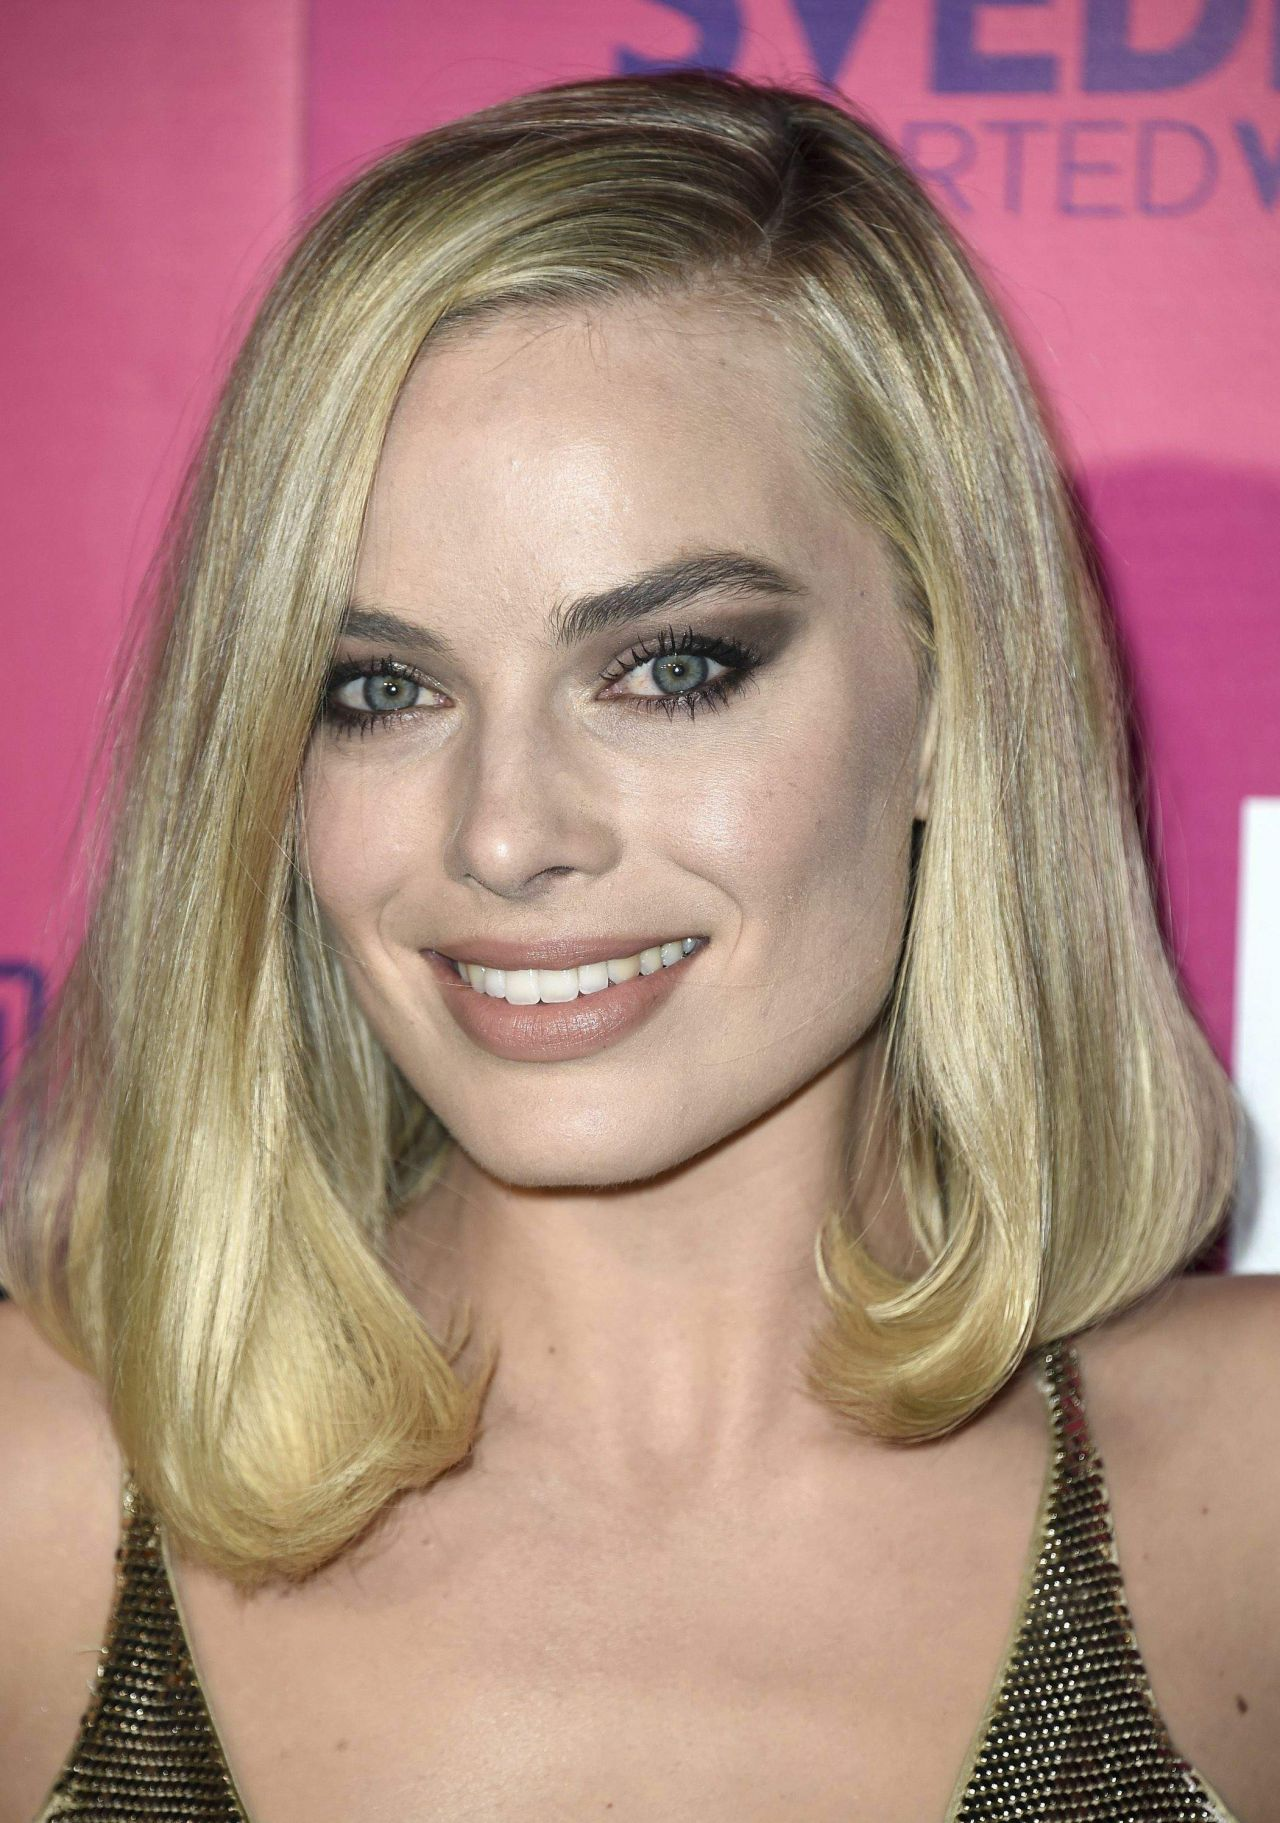 http://celebmafia.com/wp-content/uploads/2017/12/margot-robbie-i-tonya-premiere-in-hollywood-3.jpg